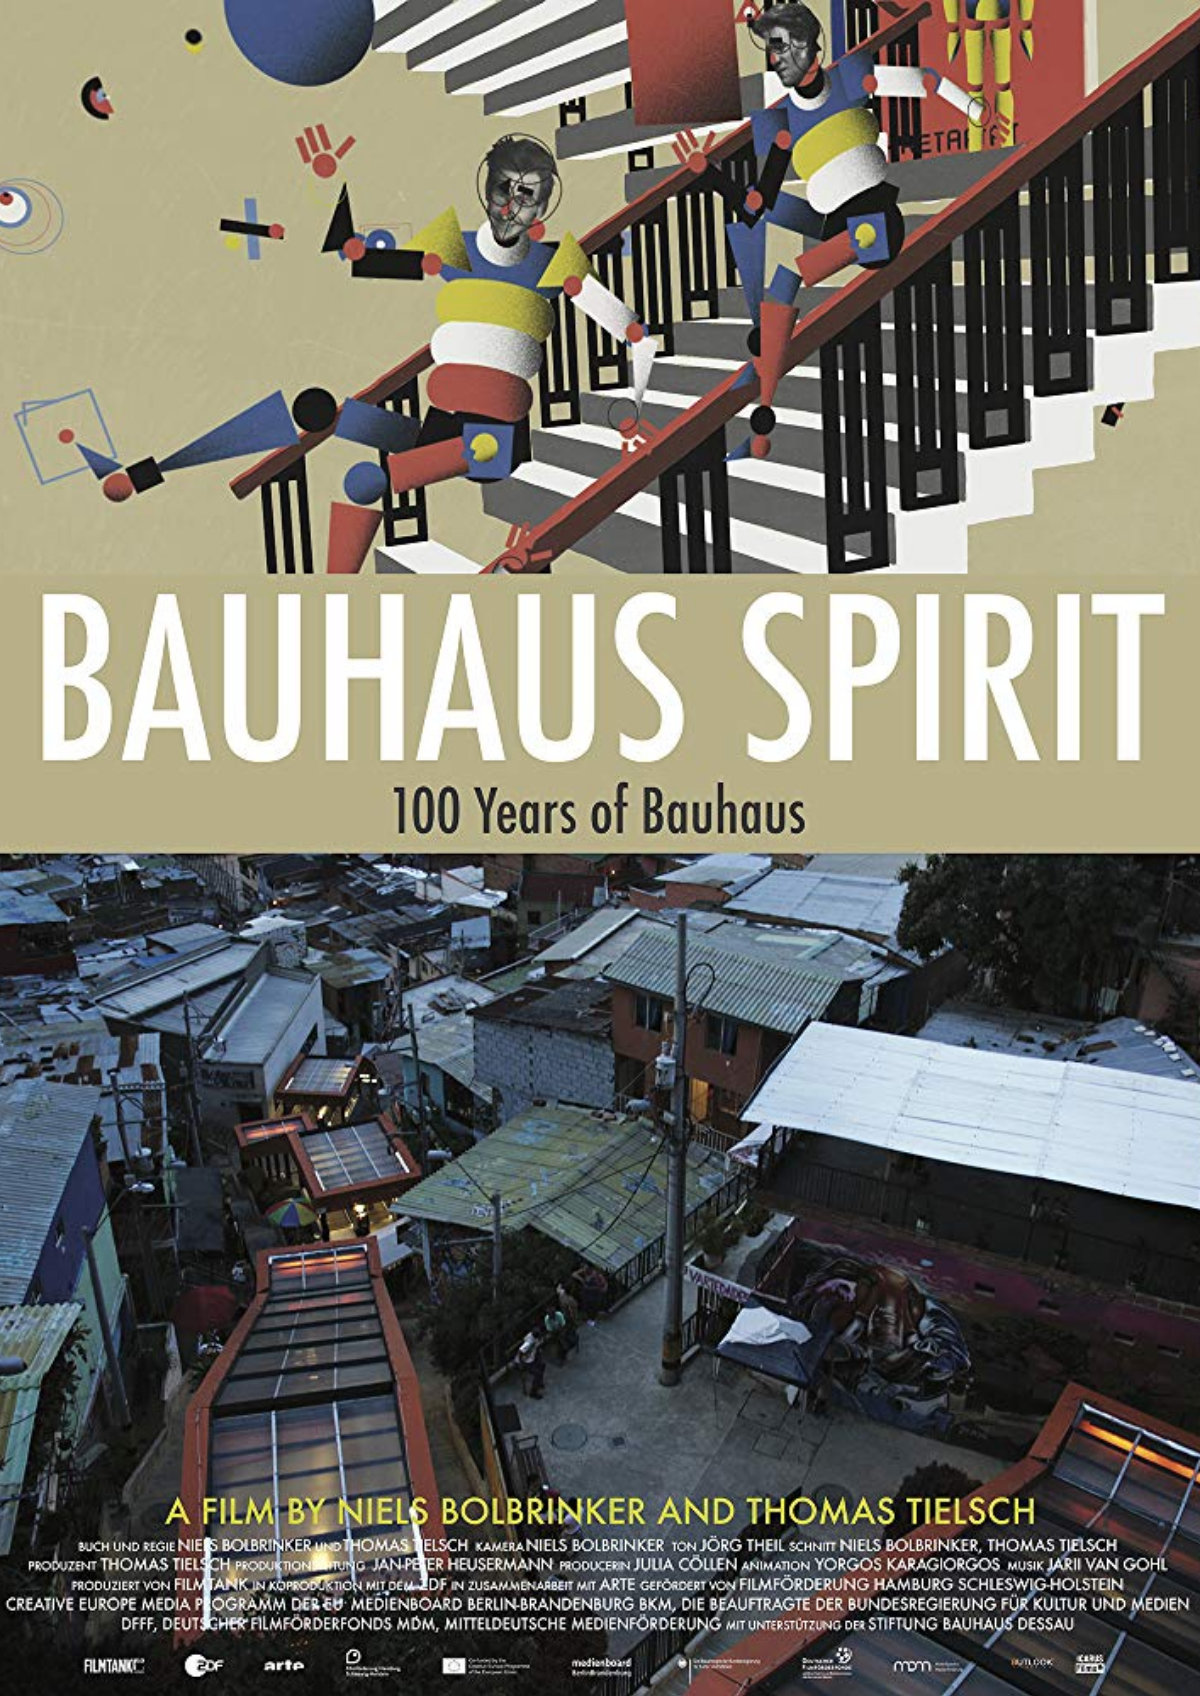 'Bauhaus Spirit: 100 Years Of Bauhaus' movie poster